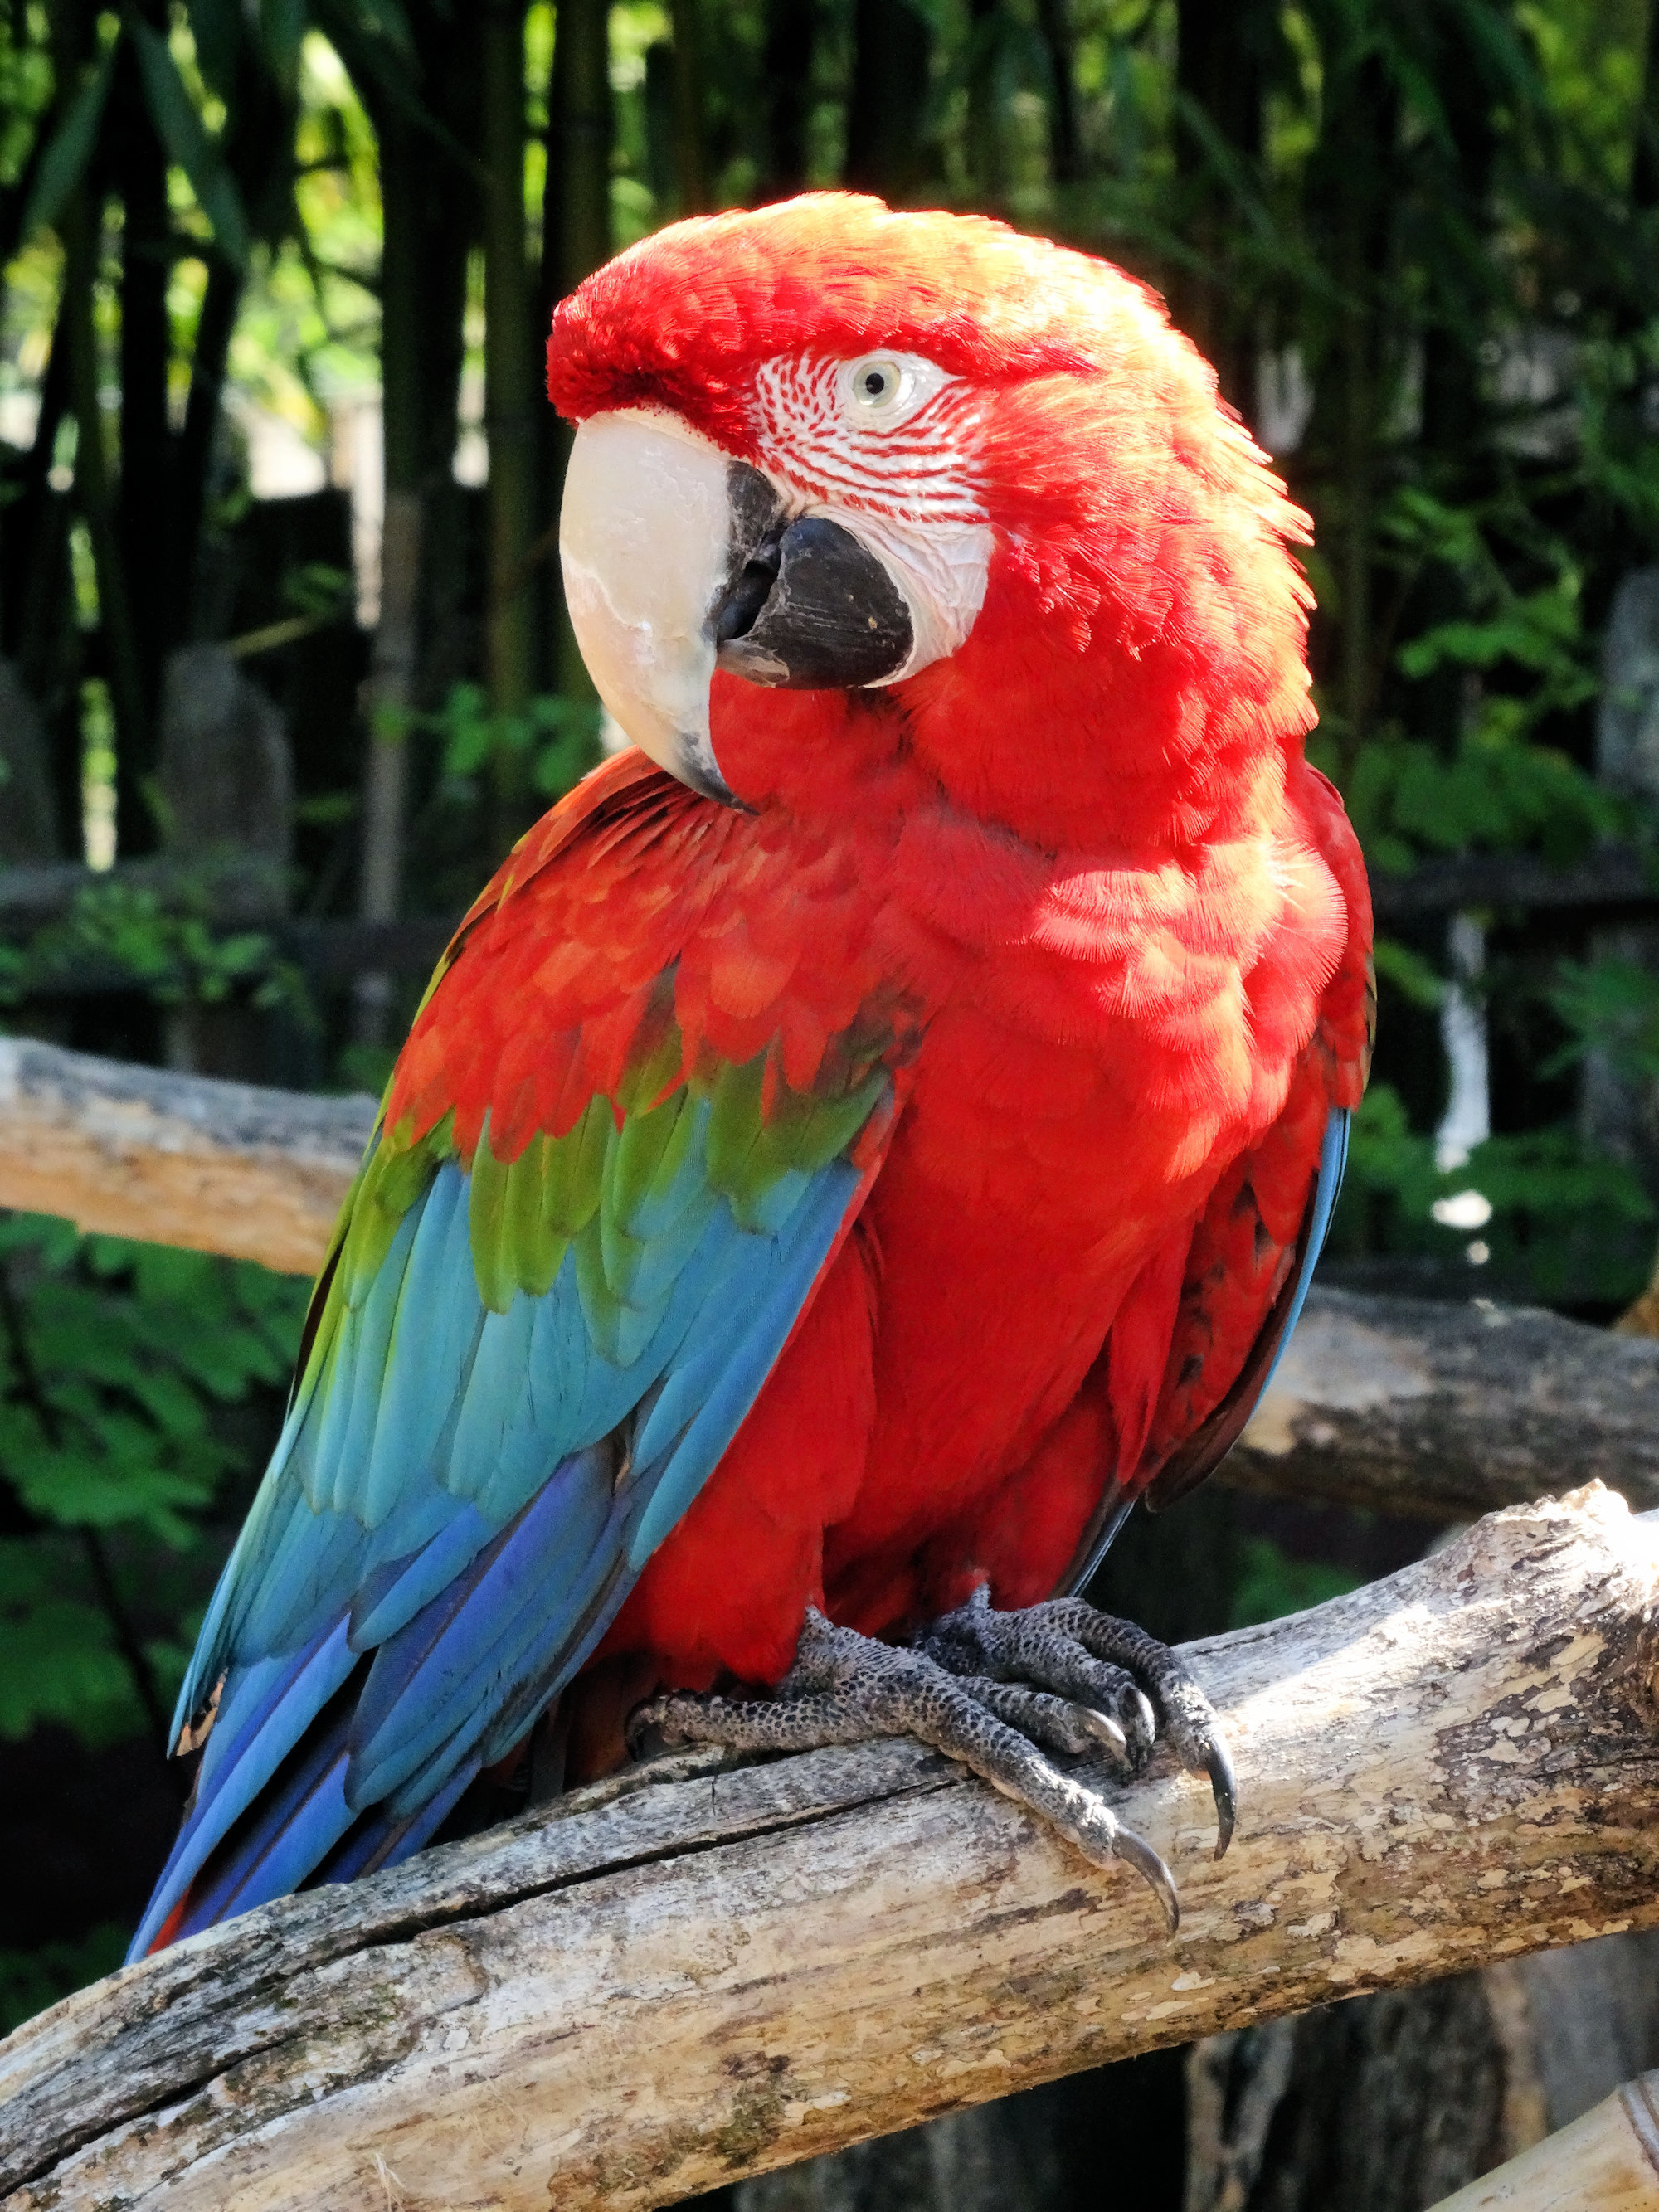 Ara chloroptère - Red and green macaw